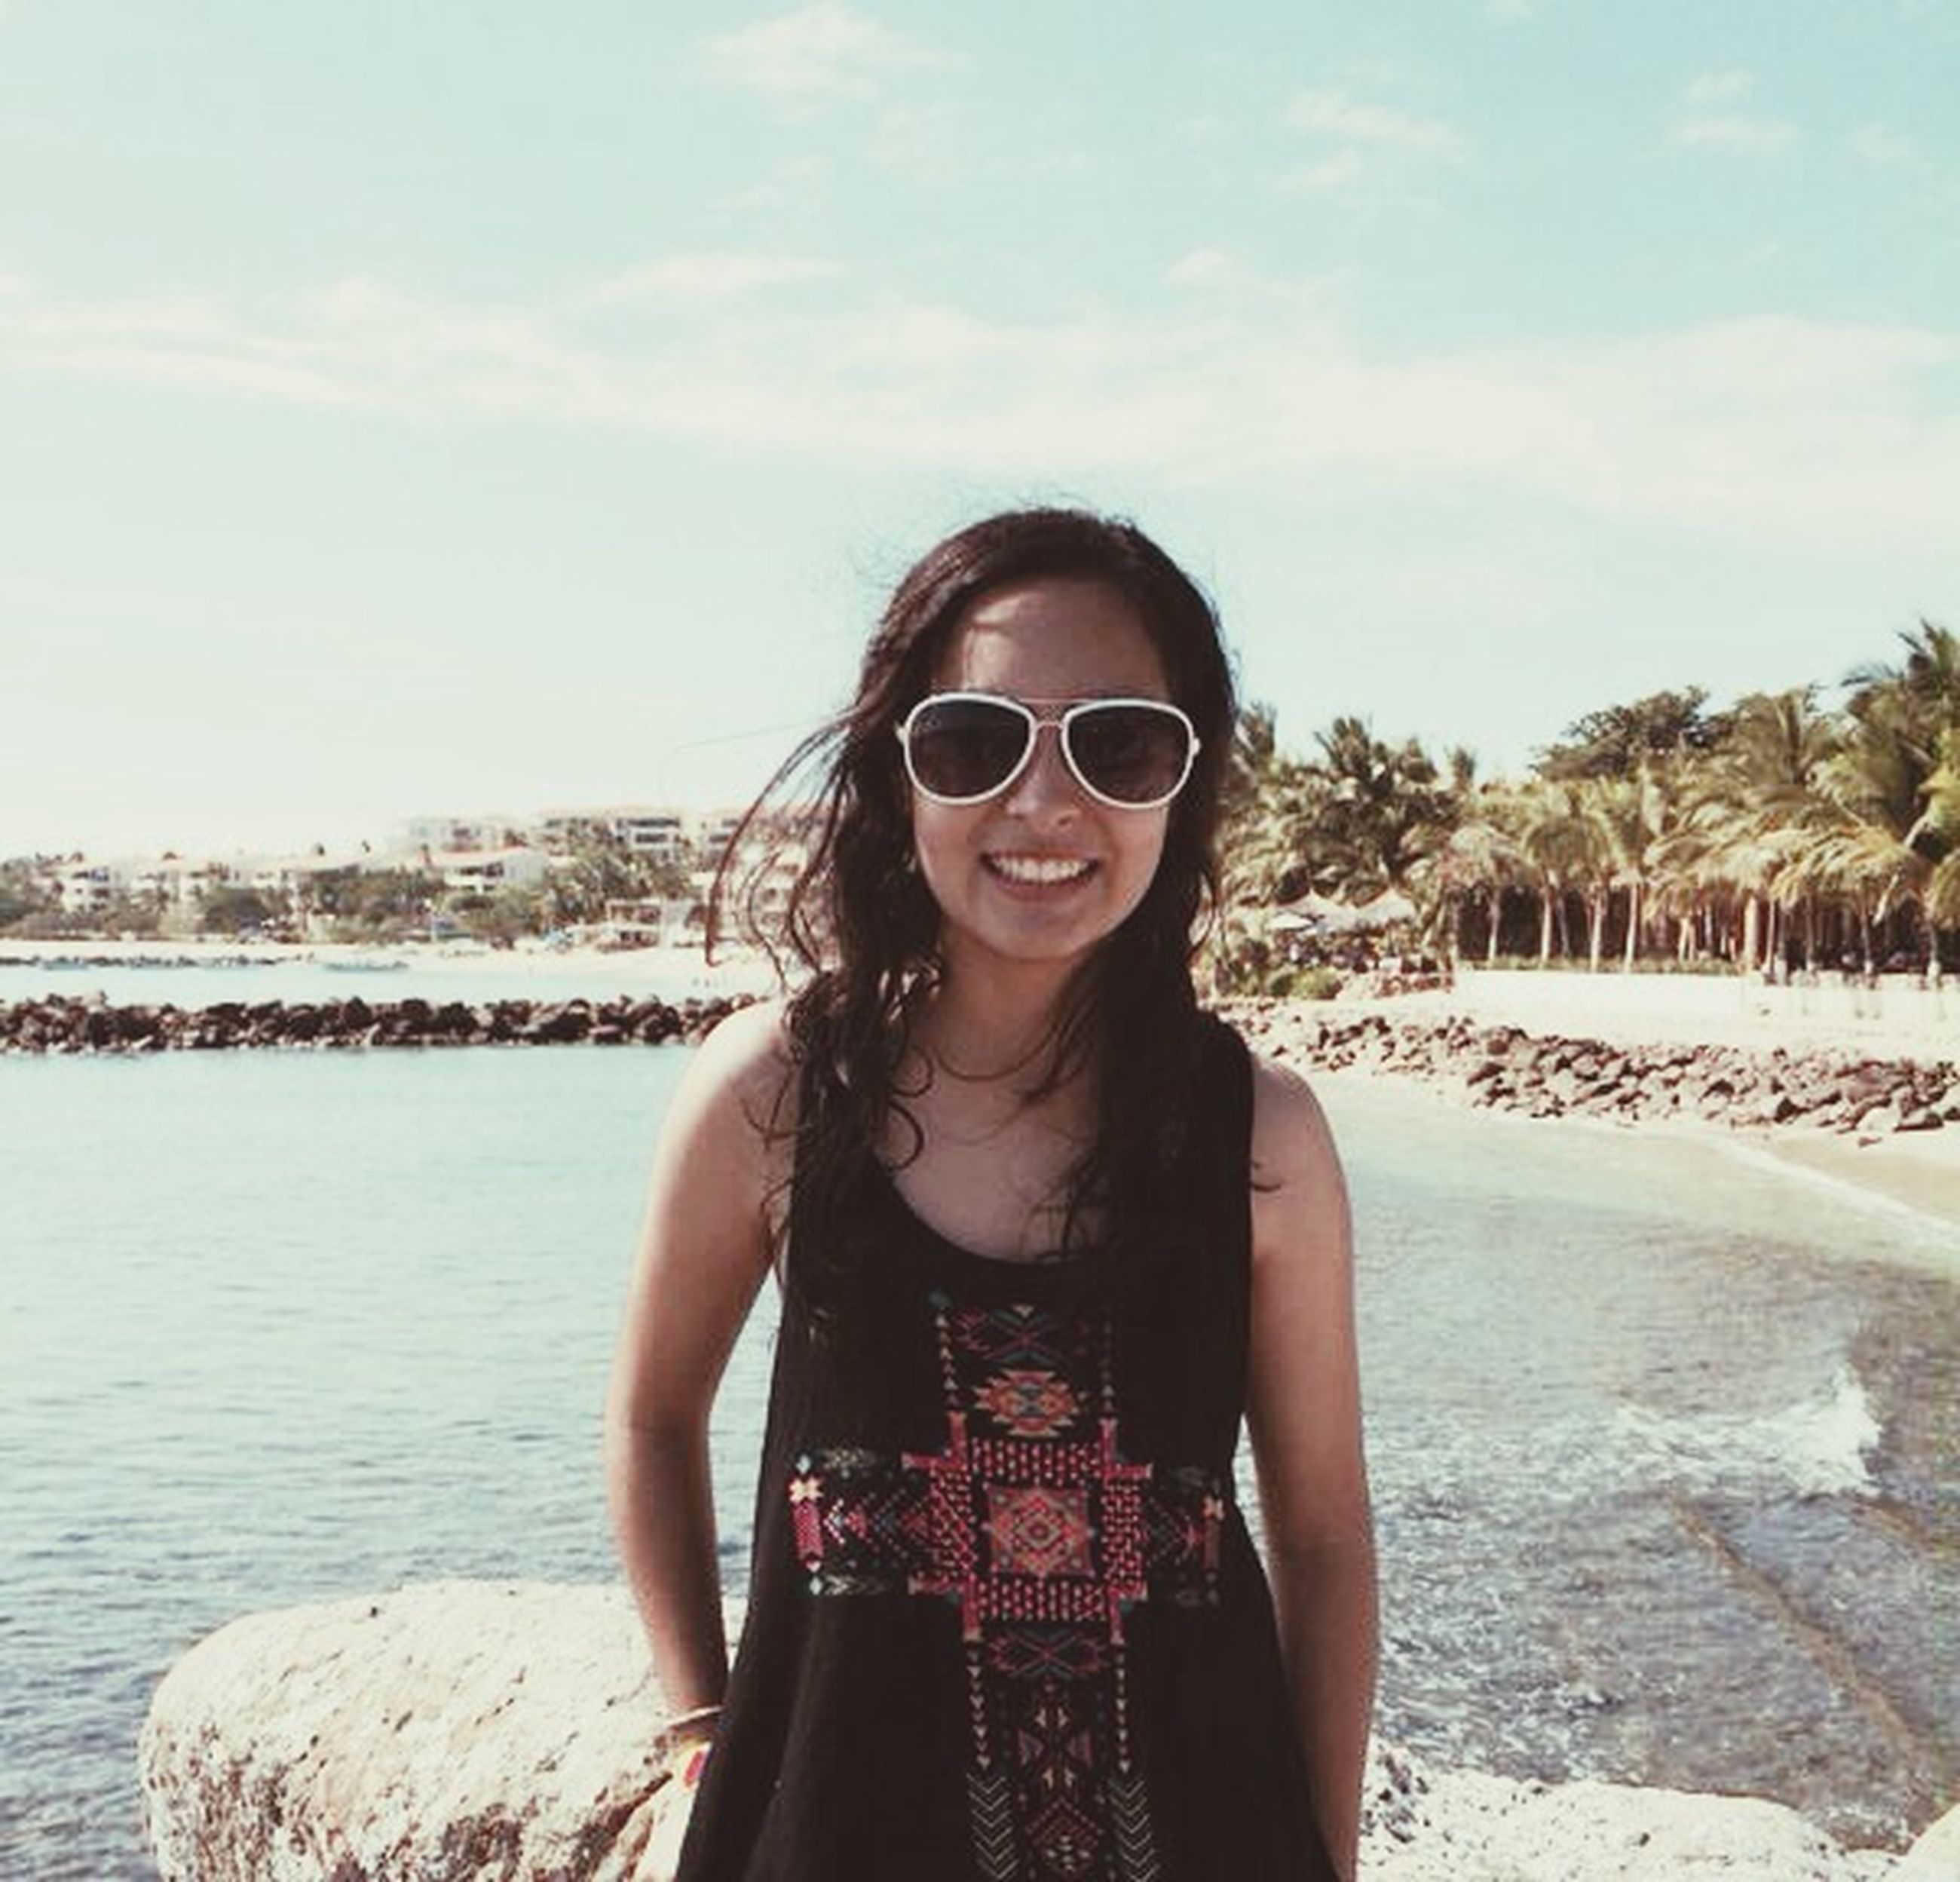 portrait, young adult, looking at camera, lifestyles, sunglasses, person, front view, leisure activity, casual clothing, young women, smiling, standing, water, sky, happiness, toothy smile, beach